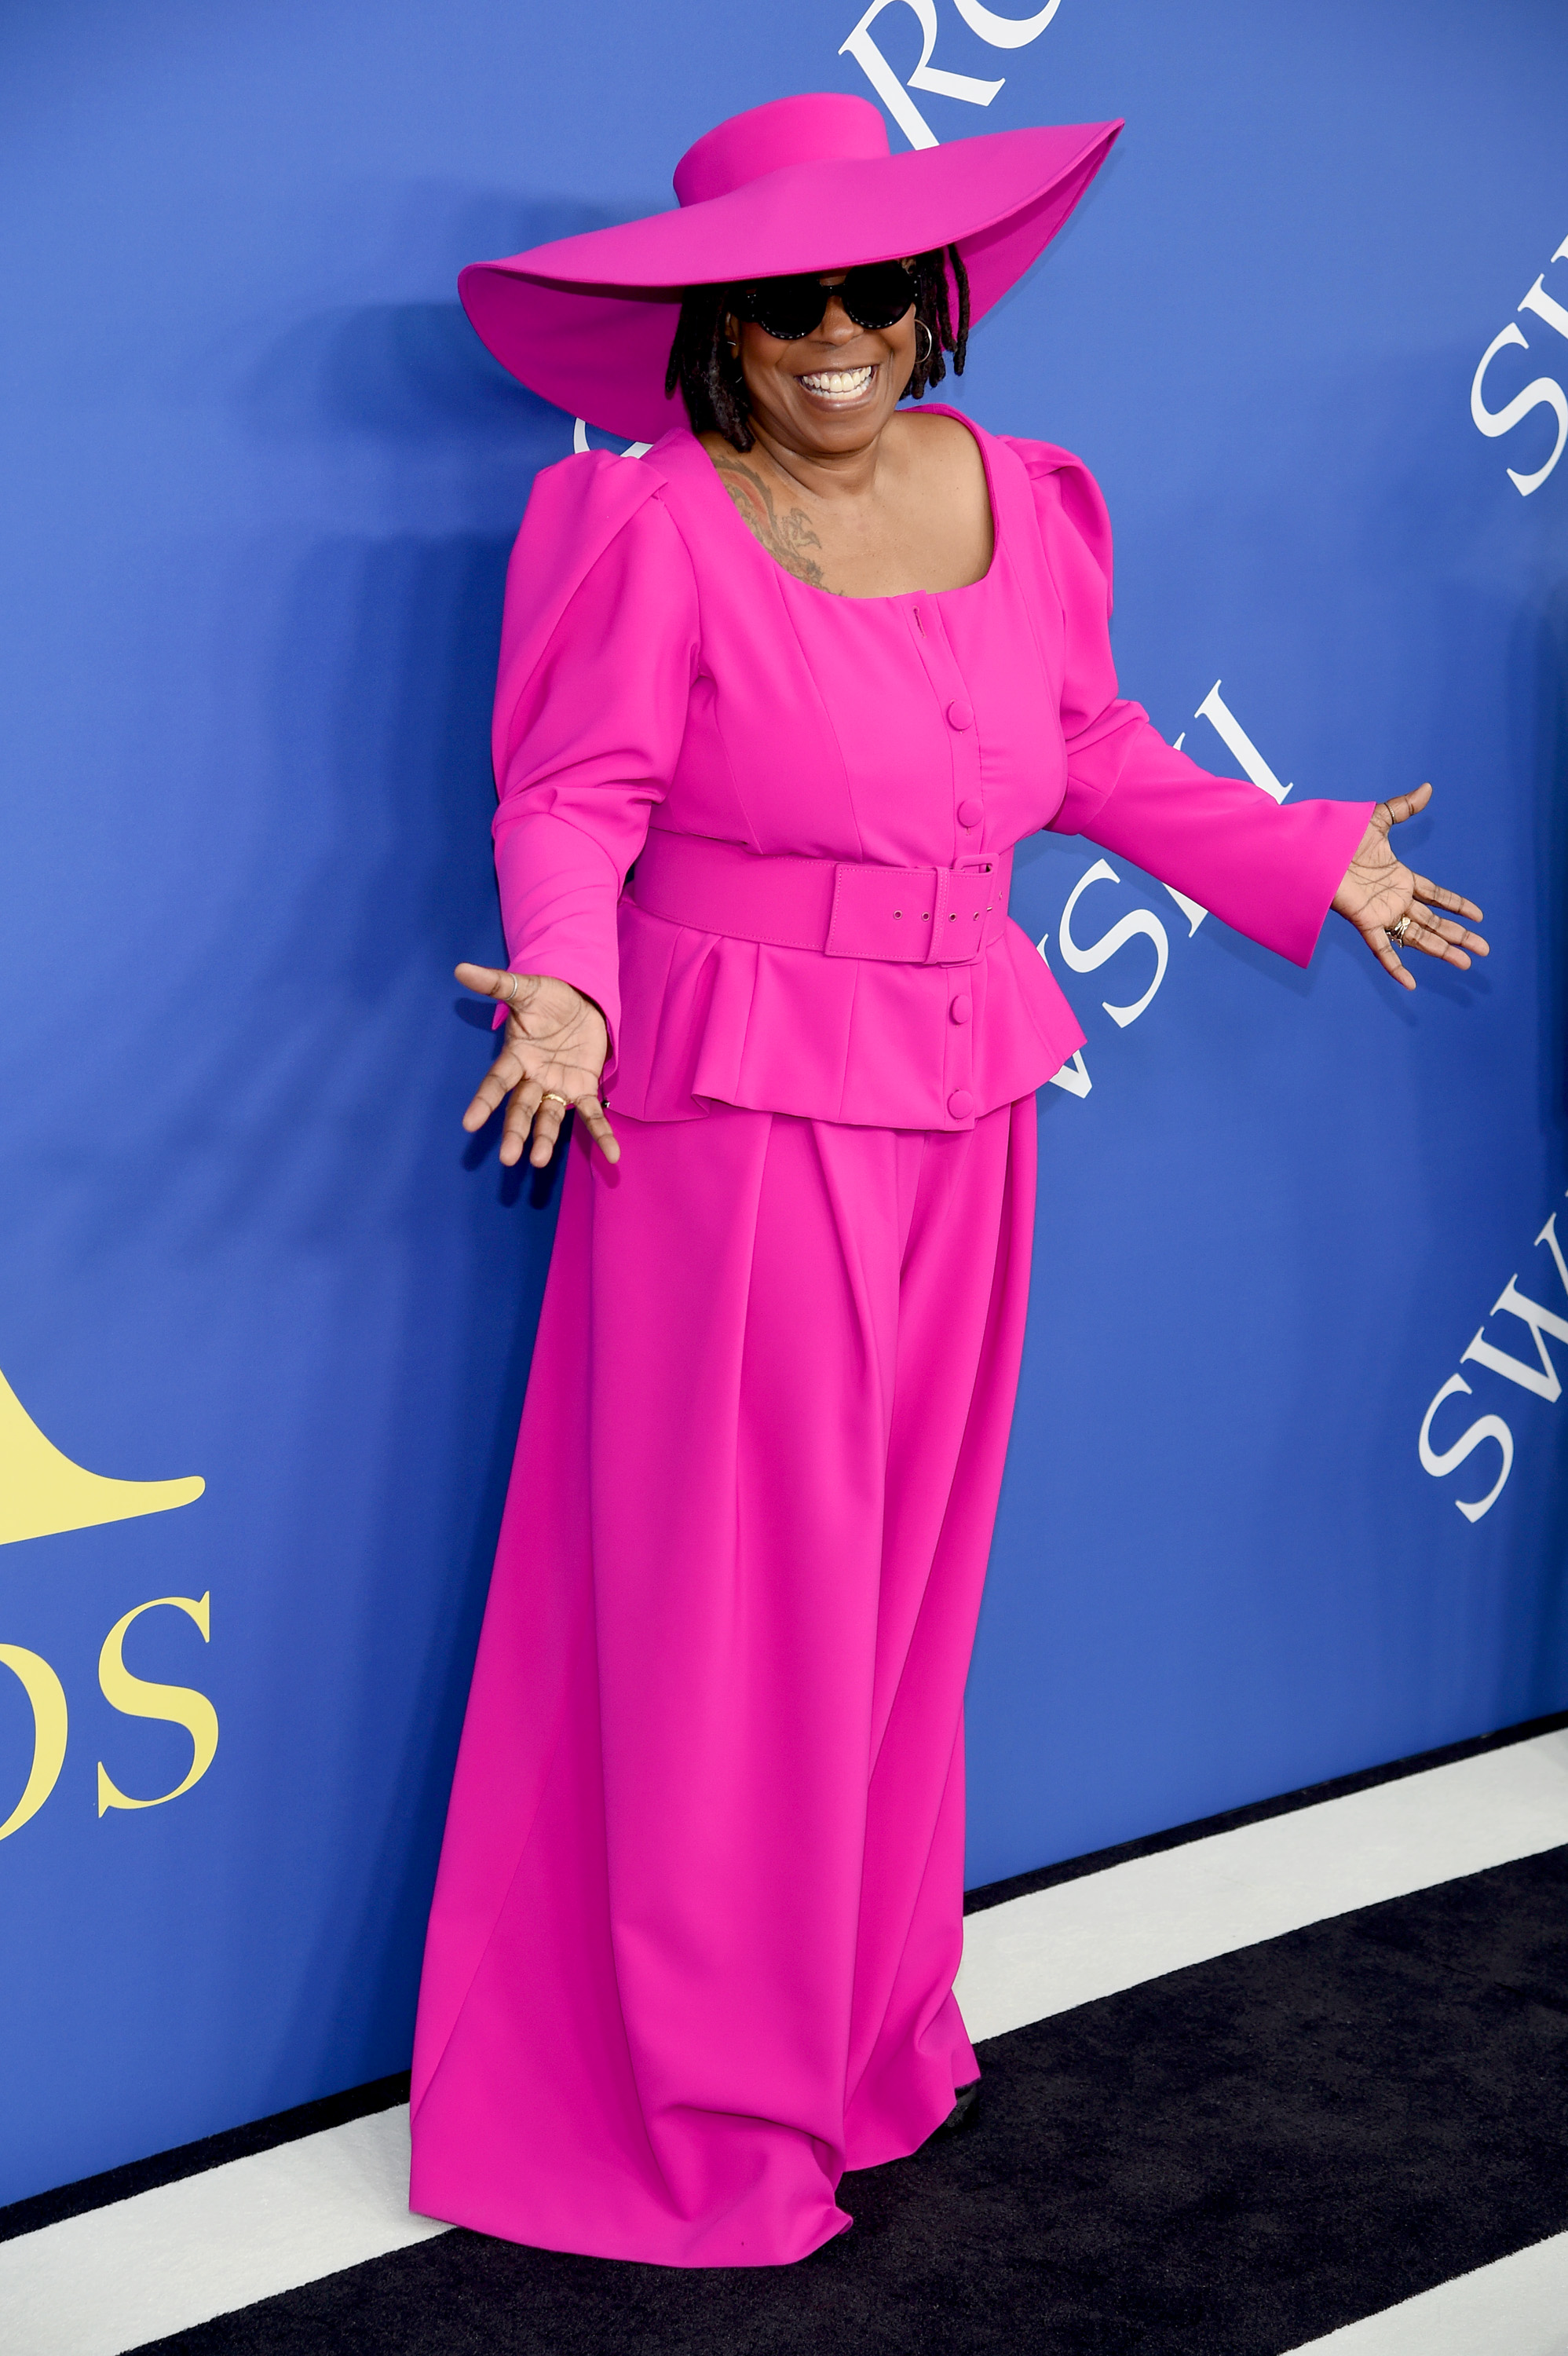 "The CFDA Awards are where designers, stylists, models and muses are honoured by the Council of Fashion Designers of America, but actress and comedian Whoopi Goldberg has taken out the top prize on the red carpet.<br /> <br /> In a head-to-toe fuchsia suit and matching hat by designer and diversity advocate, Christian Siriano, the 62-year-old co-host of <em>The View</em> demonstrated why she may be the fashion world's most underrated icon. The look was powerful, playful and had attitude in spades, much like its wearer.<br /> <br /> But the cherry on top? A pair of black sneakers hidden underneath the suit that ensured the Sister Act star could glide up and down the red carpet with much more ease than her fellow attendees in Manolos and Louboutins.<br /> <br /> This year's CFDA Awards saw supermodel Naomi Campbell take out the Fashion Icon Award, while<a href=""http://https://style.nine.com.au/2018/06/04/14/34/kim-kardashian-cfda-award-style-evolution"" target=""_blank""> Kim Kardashian West is set to receive theinaugural Fashion Influencer honour.</a><br /> <br /> Also gracing the podium tonight is iconic designer Carolina Herrera who will receive the Founder's Award, and <em>British Vogue</em>'s editor-in-chief, Edward Enniful, who will receive the Media Award.<br /> <br /> The CFDA Awards may be slightly more low-key than the Met Gala, but guests such as Cate Blanchett, Ashley Graham and Gigi Hadid deliver a serious high fashion fix.<br /> <br /> Click through to see all the best looks from the 2018 CFDA Awards."